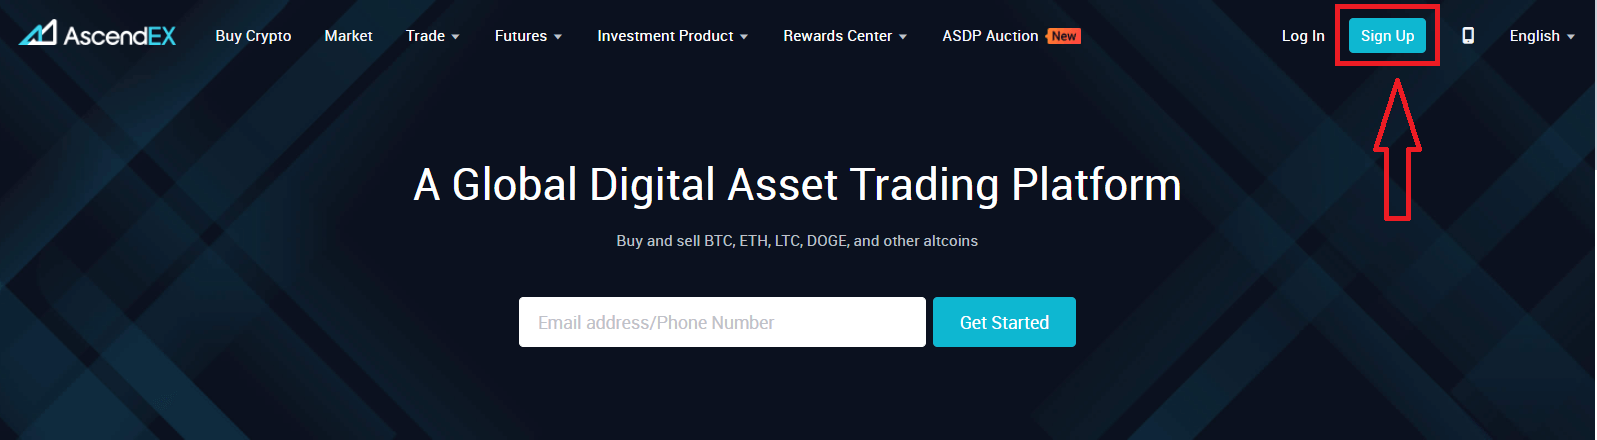 How to Register and Verify Account in AscendEX